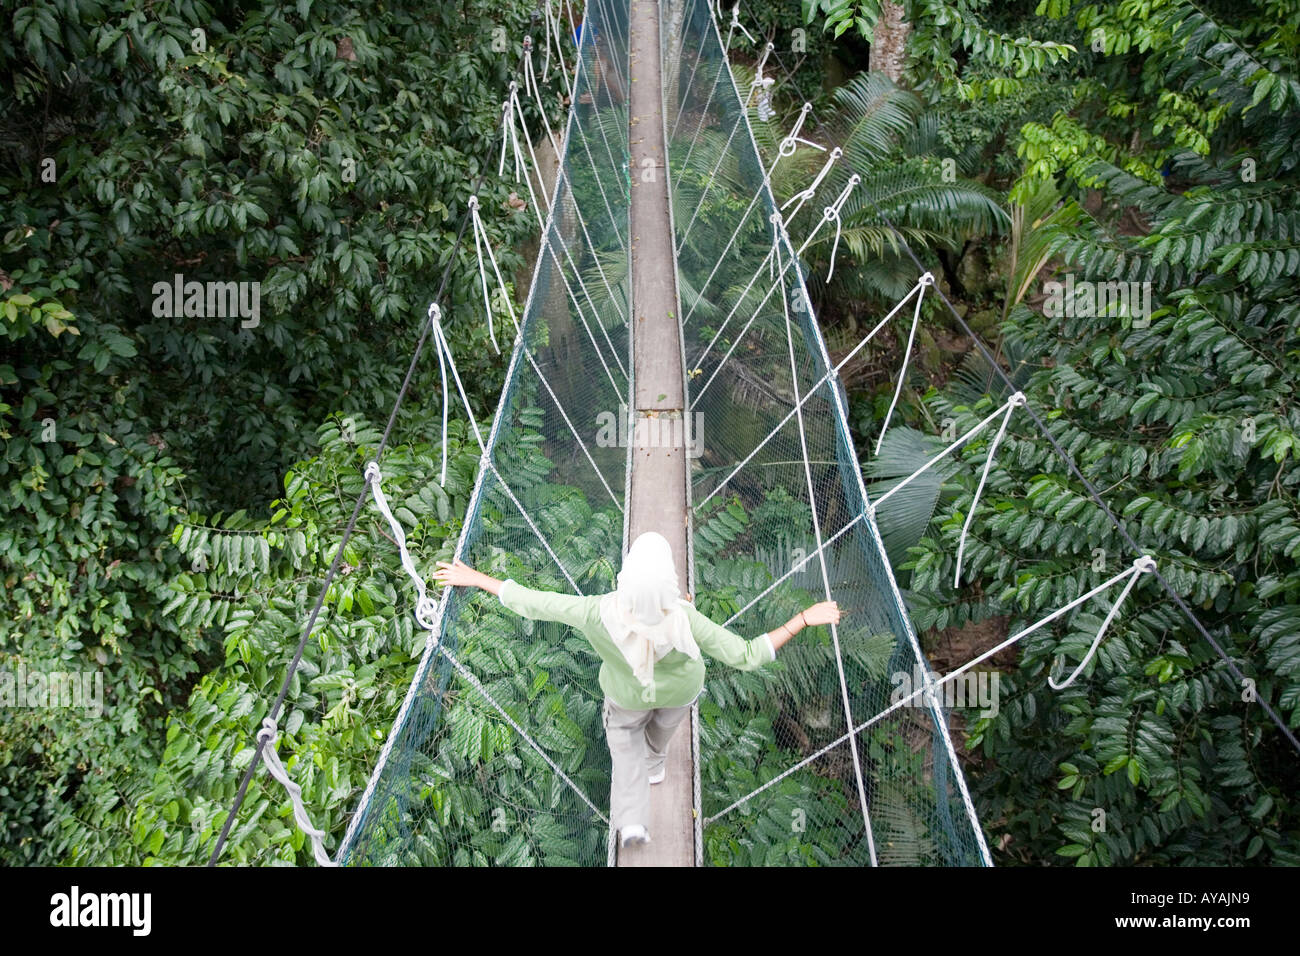 Malaysia Kuala Lumpur Rainforest Canopy walkway above trees and forest floor at Forest Research Institute of Malaysia in Kepong & Malaysia Kuala Lumpur Rainforest Canopy walkway above trees and ...